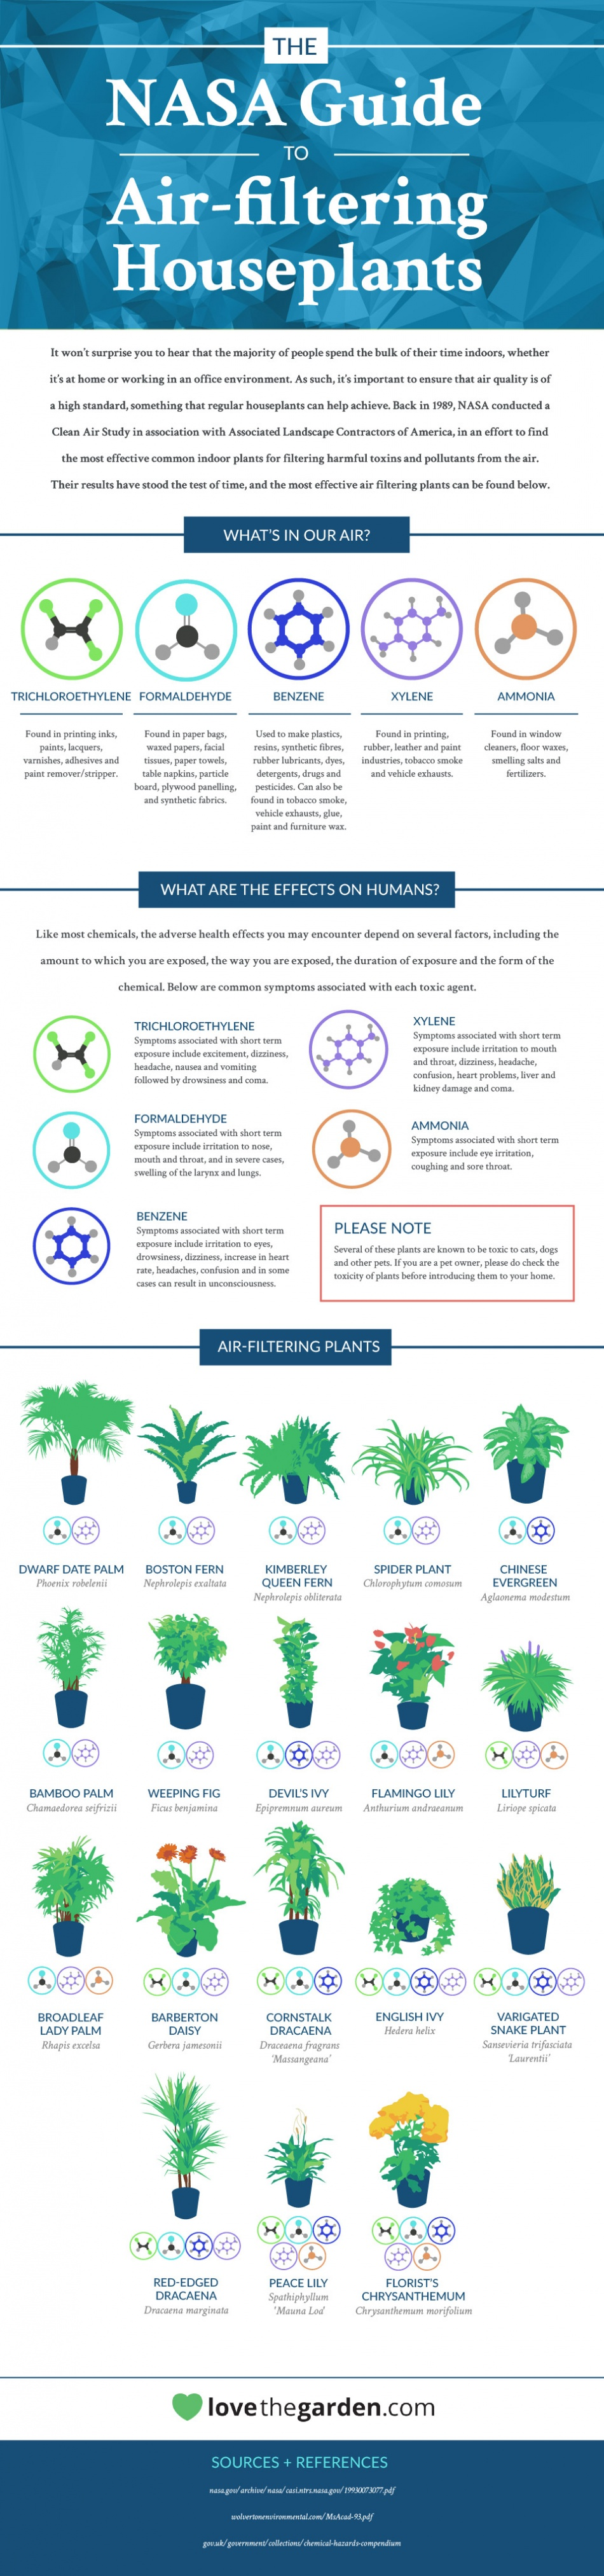 NASA Reveals A List Of The Best Air-Cleaning / Air-Filtering HousePlants For Your Home